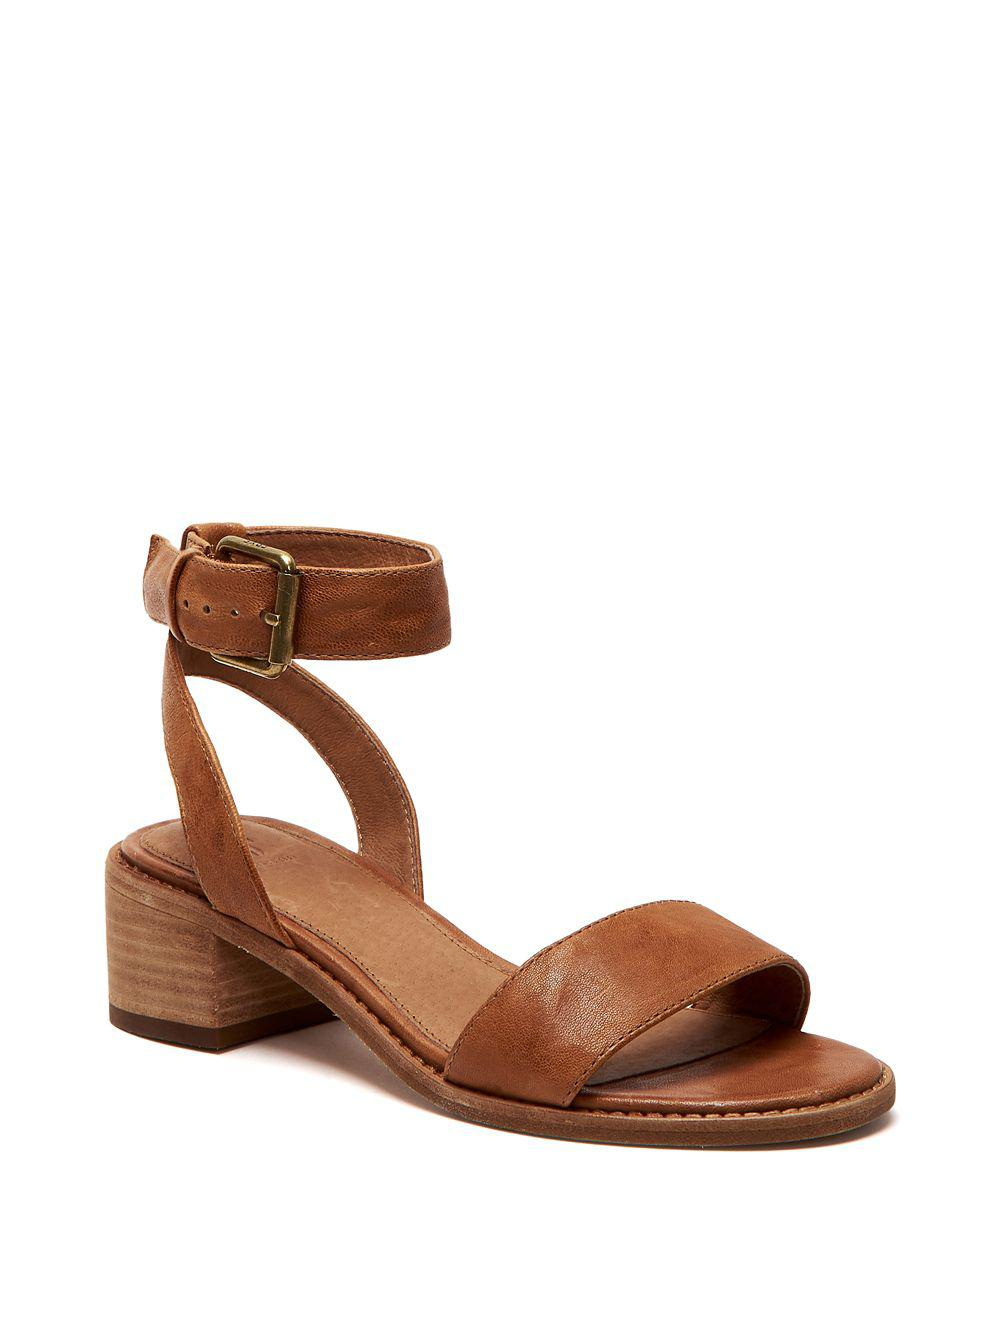 7a92396e204 Frye Cindy Ankle Strap Sandals in Brown - Save 57.48299319727891% - Lyst